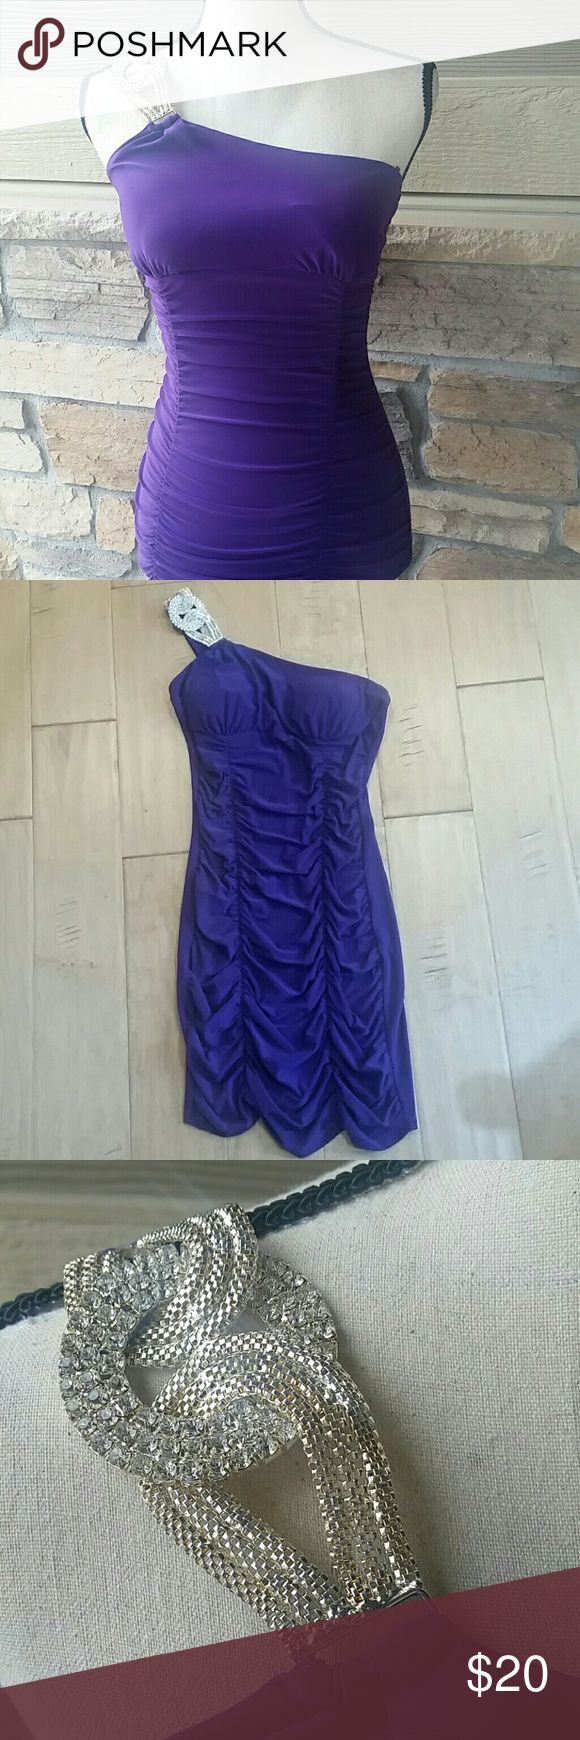 "Body Central Party Dress Make an entrance in this gorgeous, sexy, one-shoulder, royal purple fitted minidress by Body Central. Incredible sparkly hardware on shoulder. Worn only once. Excellent condition. 92% polyester, 8% spandex. 33.5"" from top of shoulder strap. Body Central Dresses Mini"